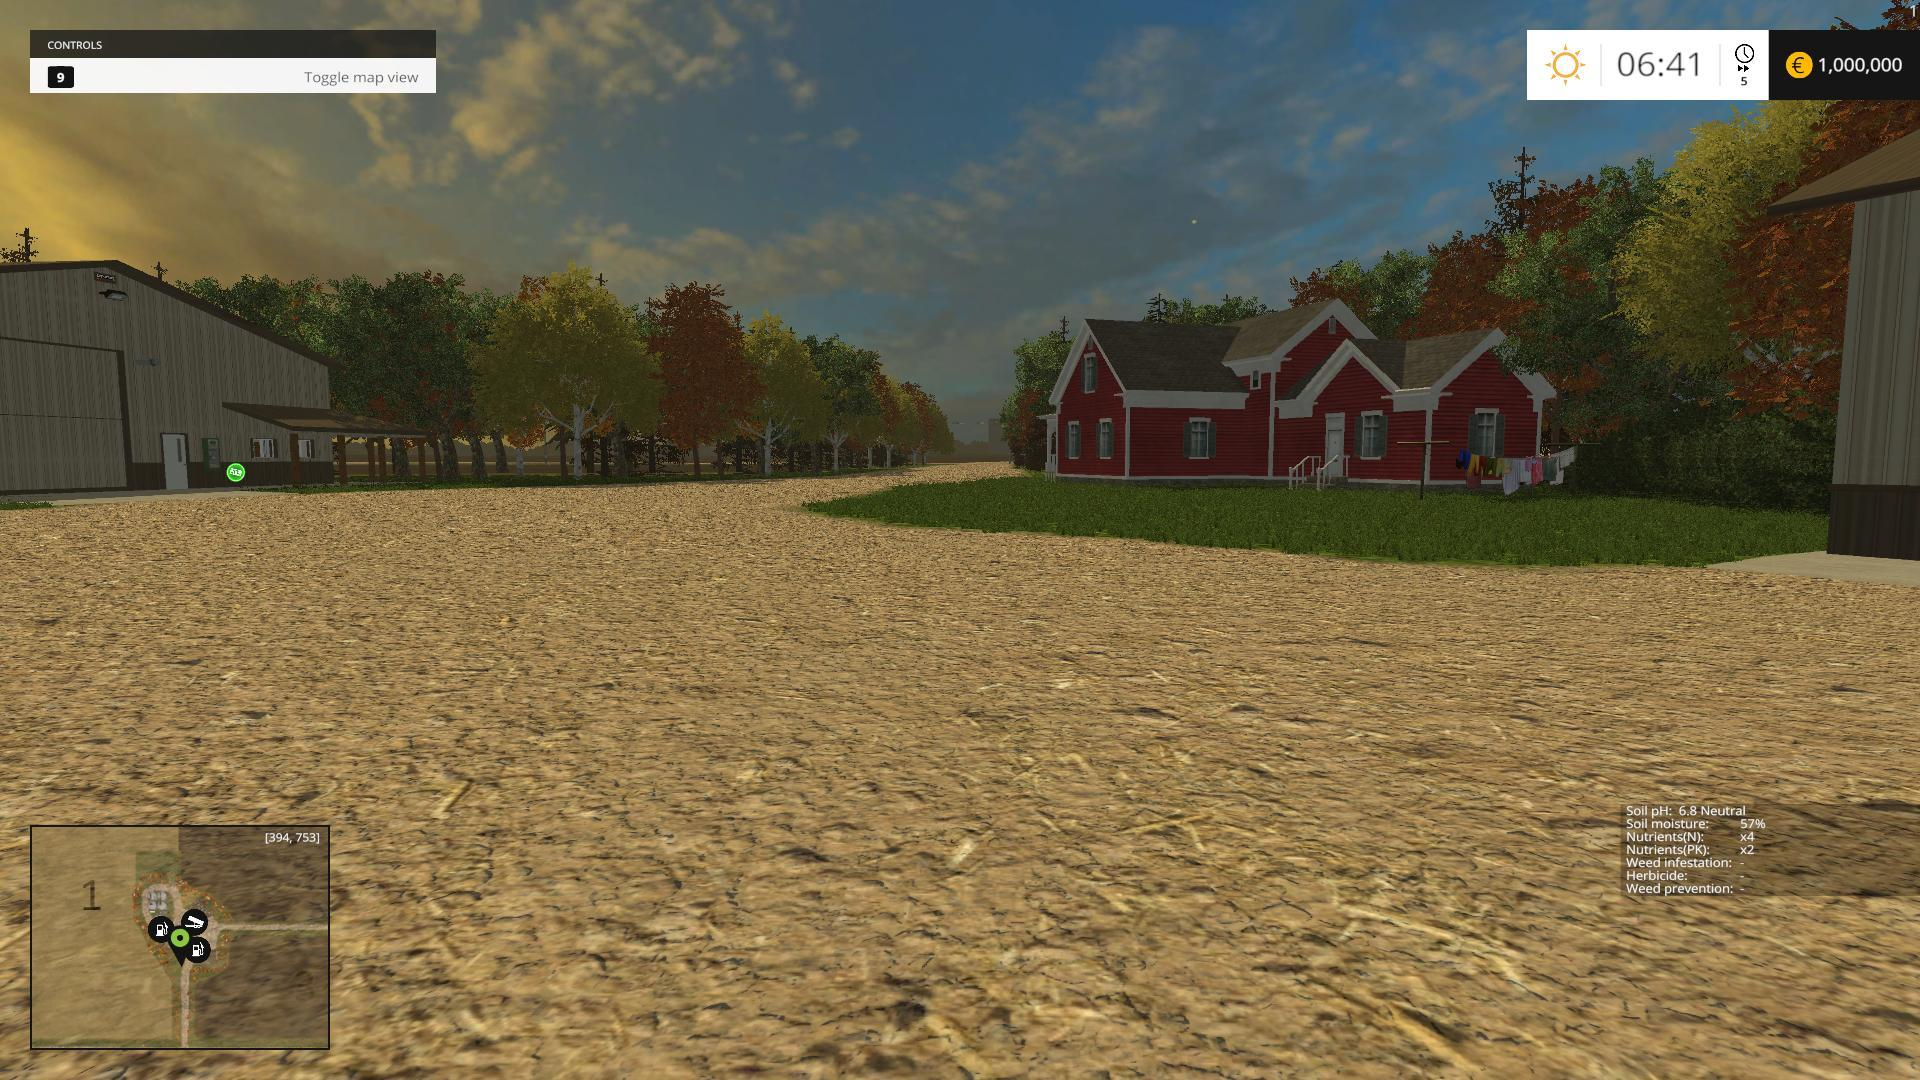 Farming Simulator 17 American Map.Small Town America Map V2 0 Farming Simulator 2019 2017 2015 Mod